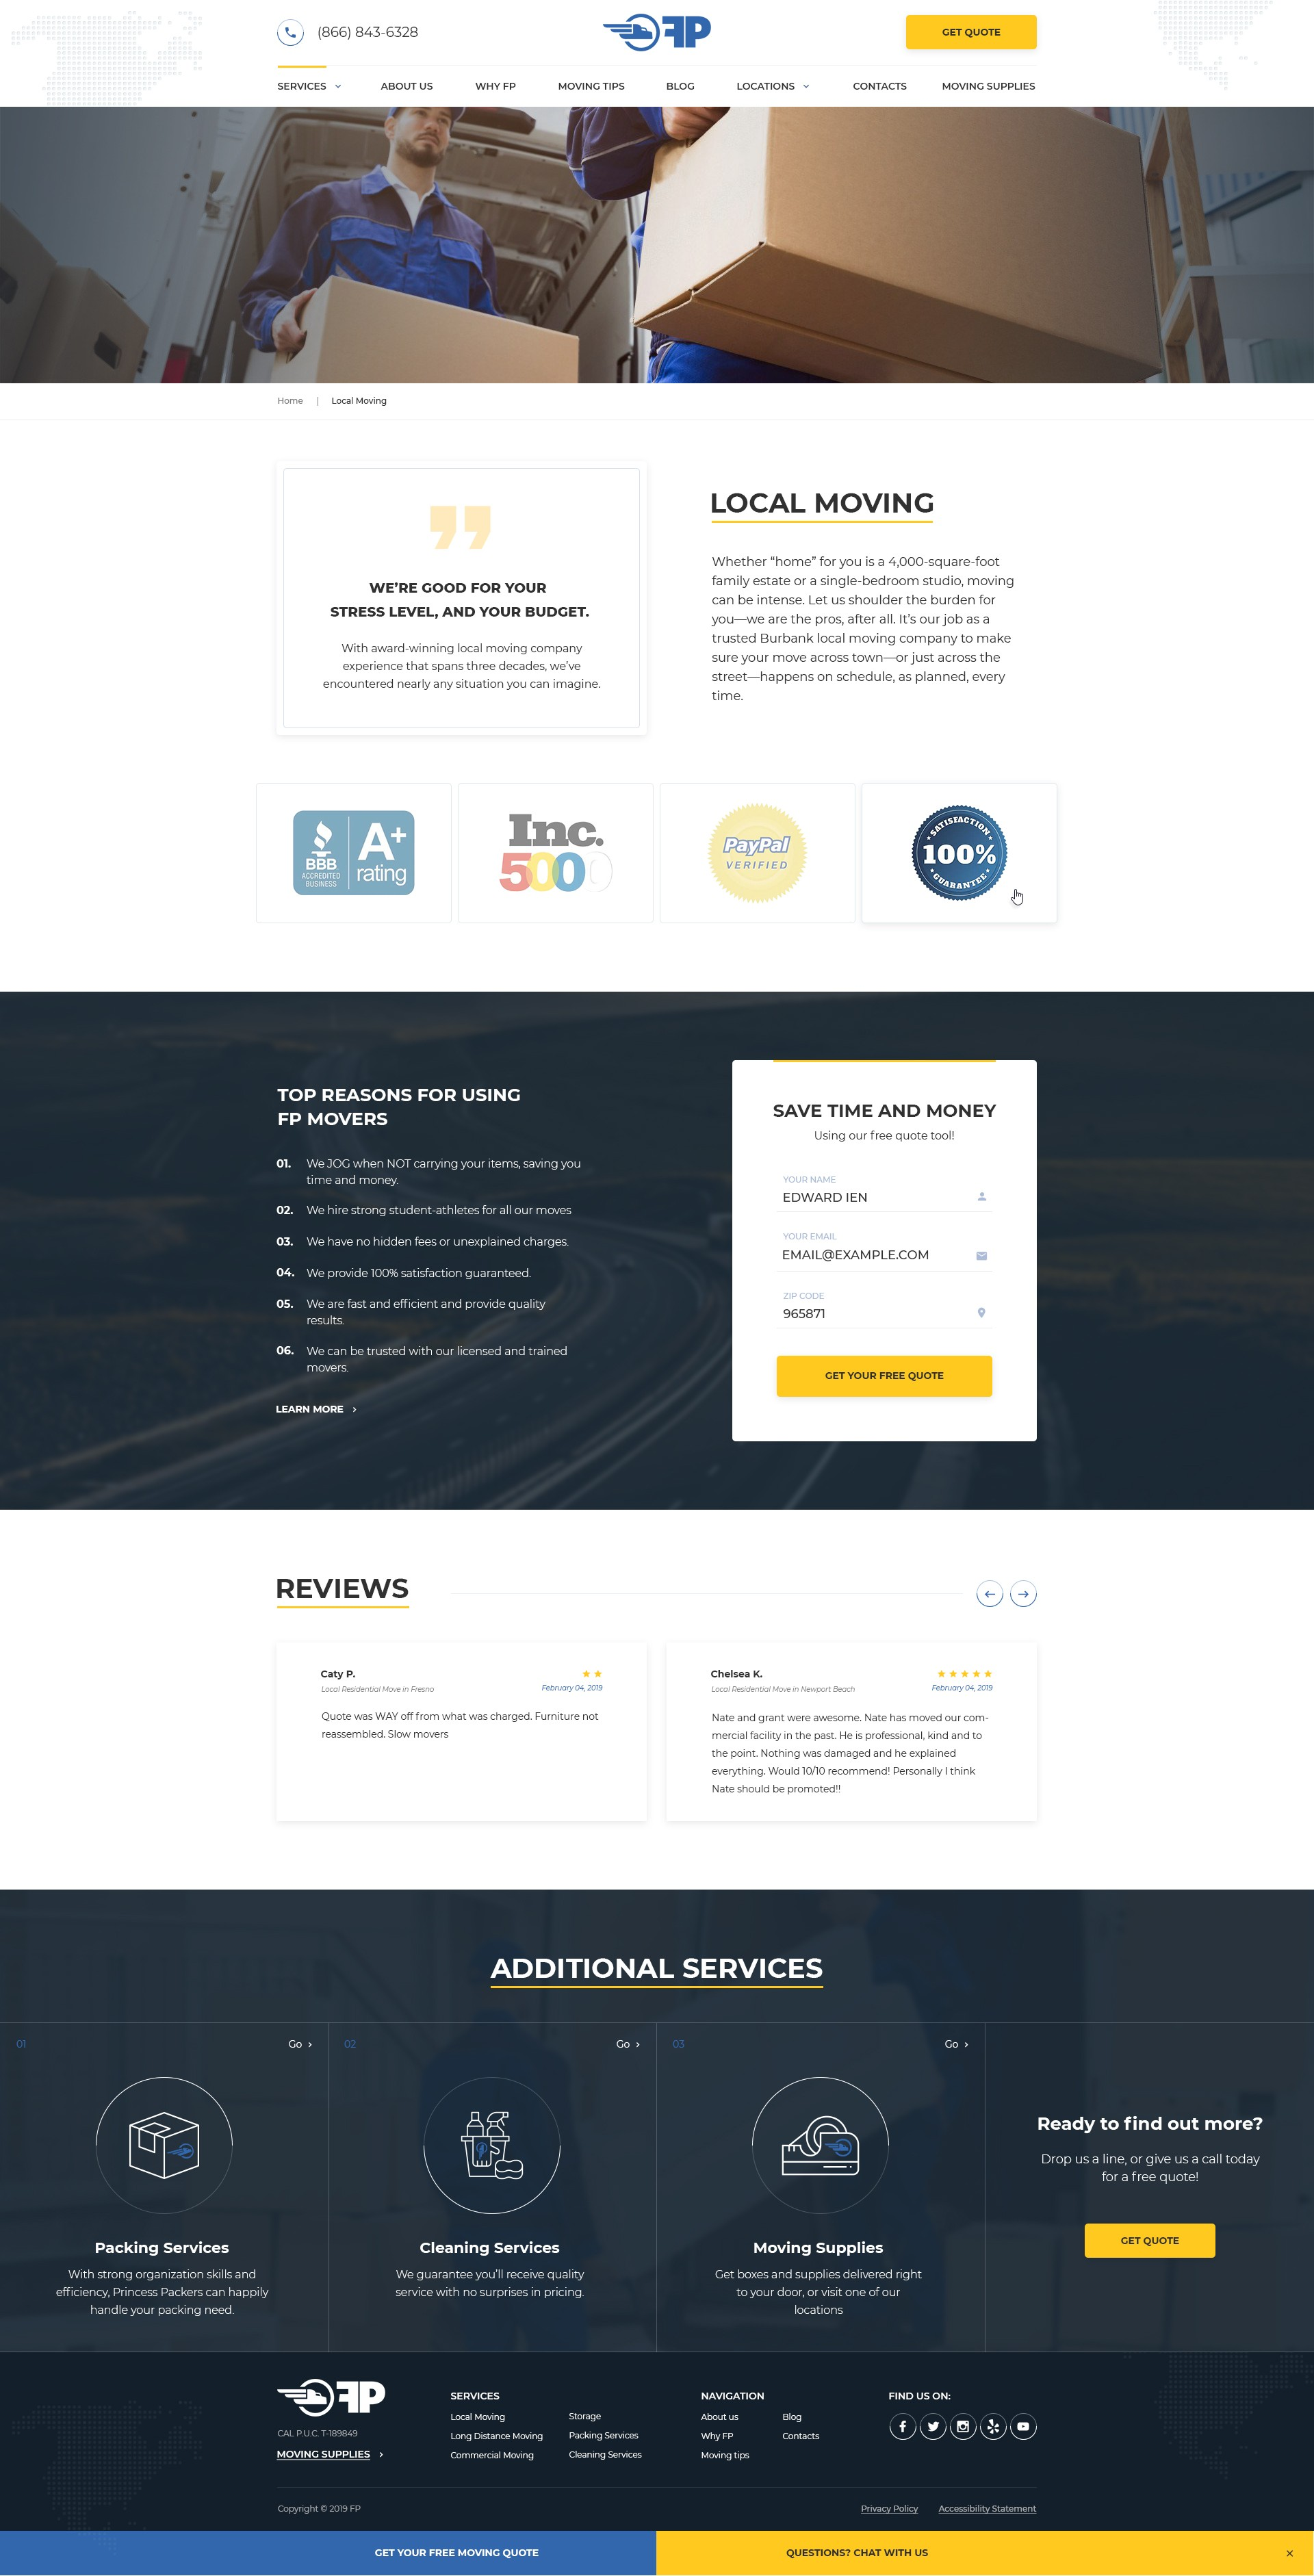 Movers_design_03_Service_page_1.0